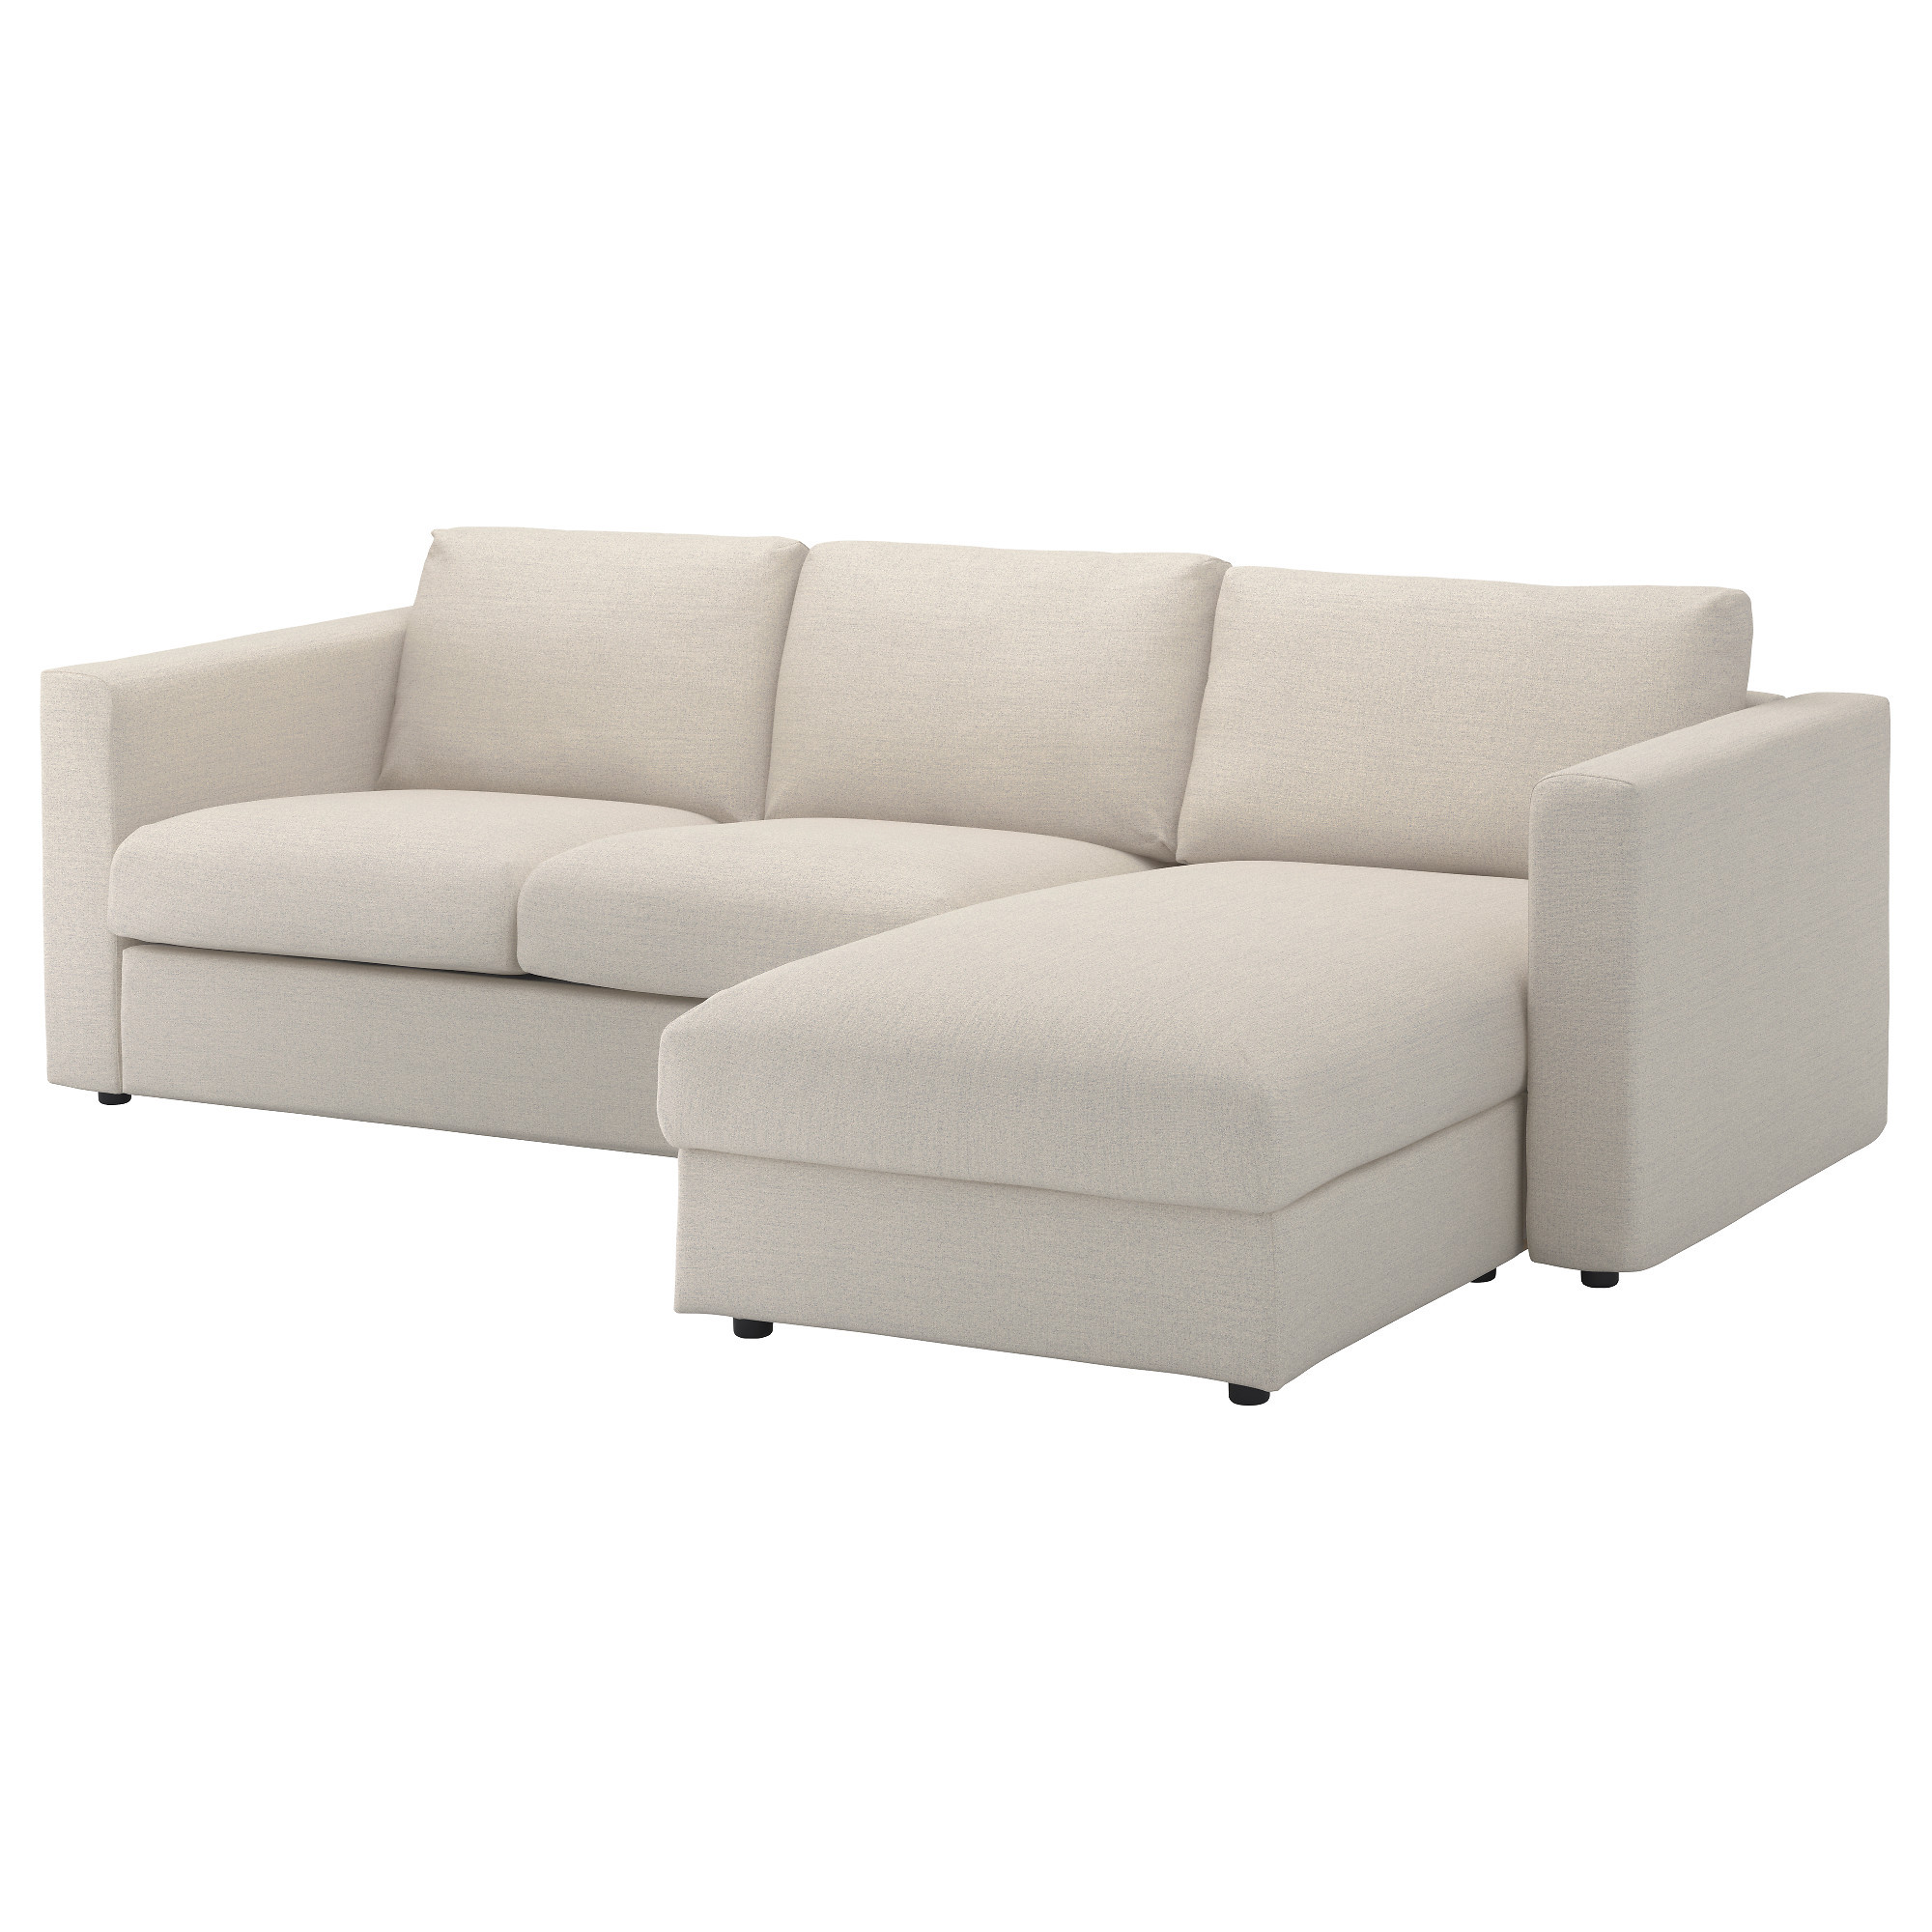 Sofa 3 Plazas Chaise Longue Nuevo Vimle Cover for 3 Seat sofa with Chaise Longue Gunnared Of 37  atractivo sofa 3 Plazas Chaise Longue